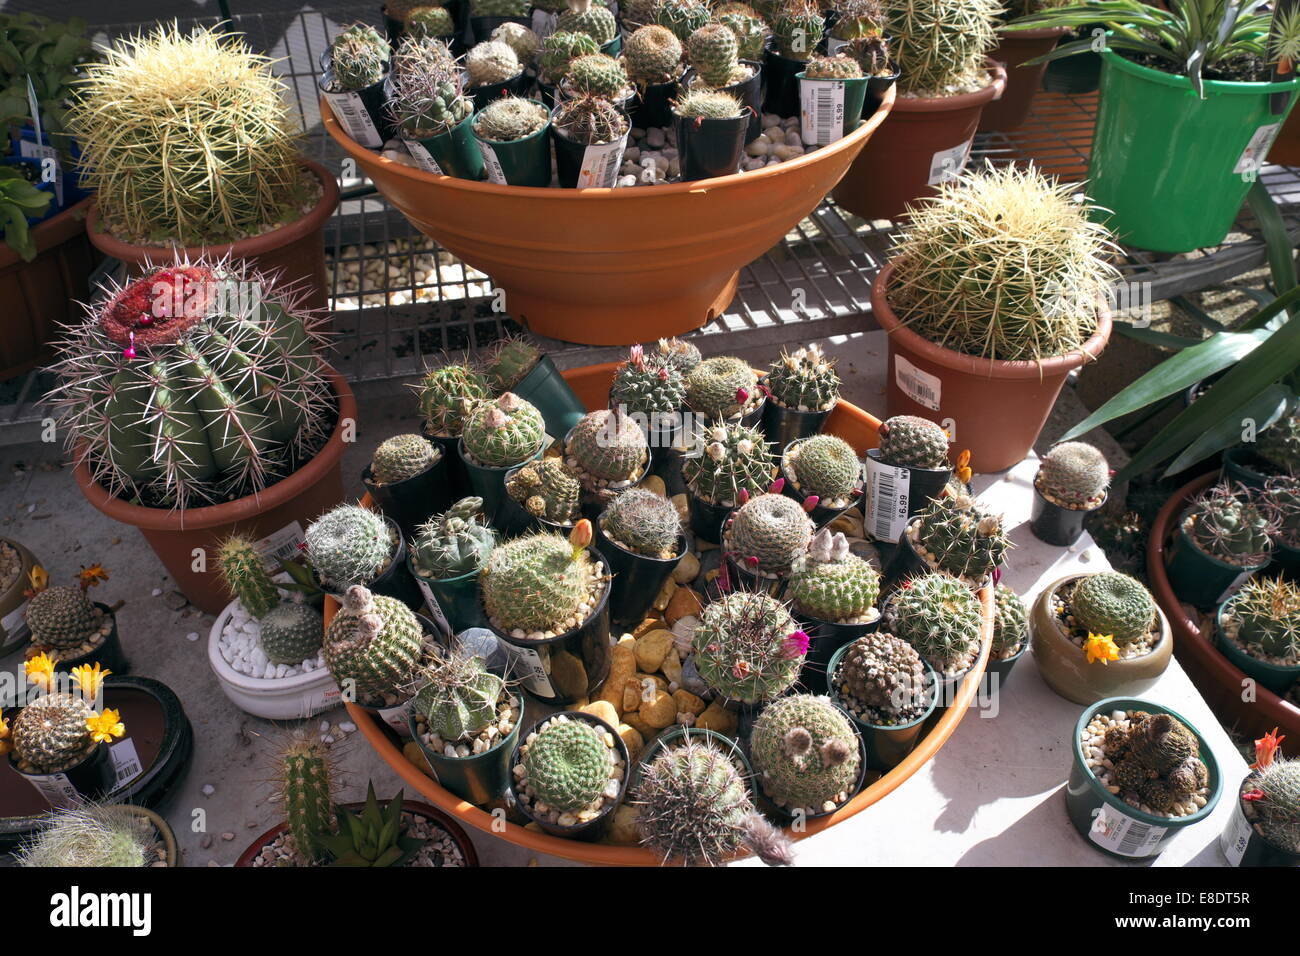 Buy Plants Sydney Cactus Cacti Cactuses For Sale In A Sydney Garden Centre